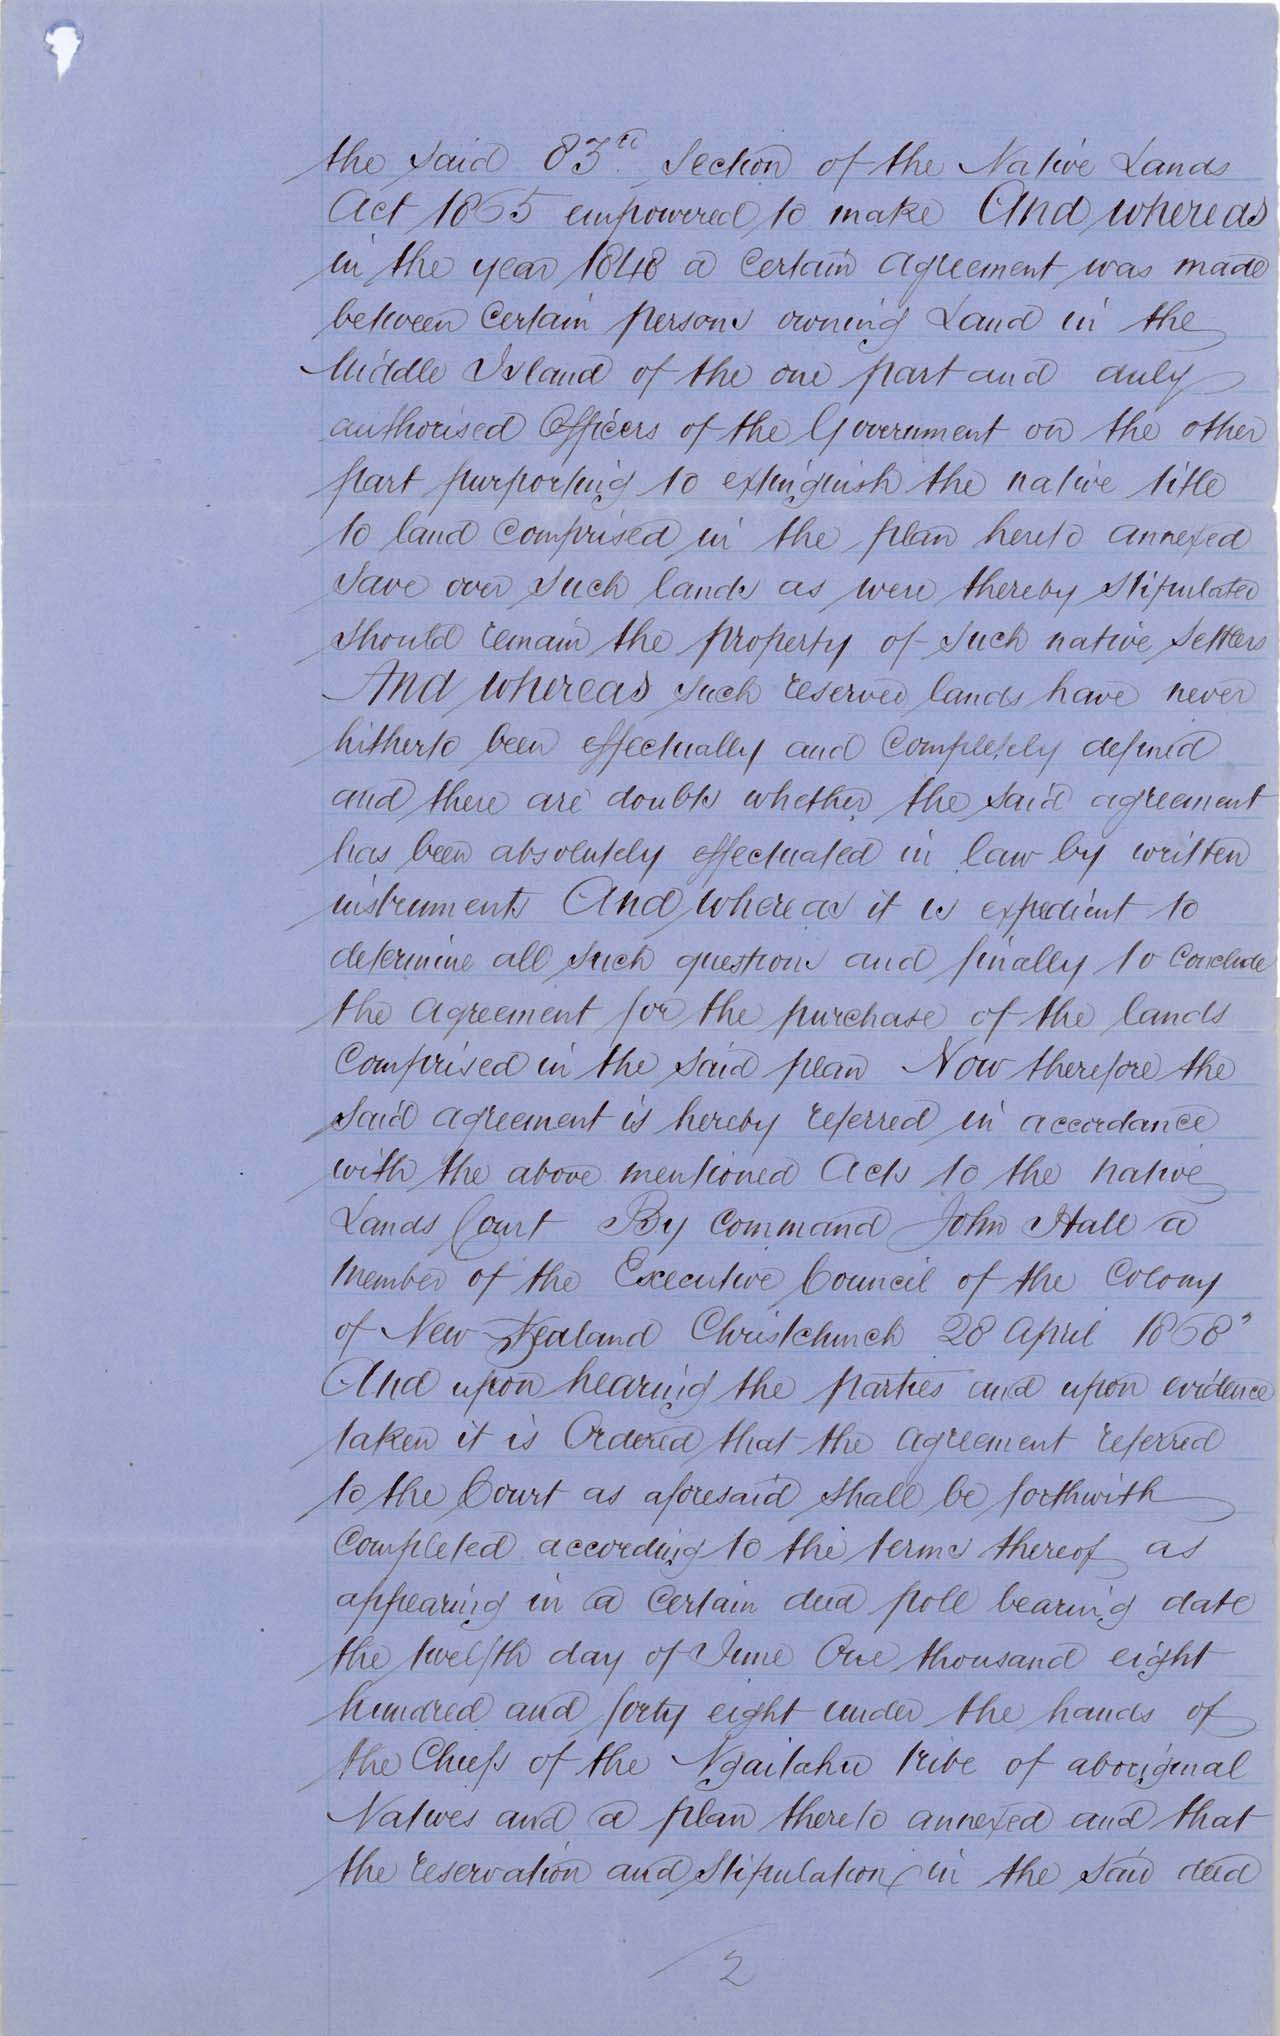 Descriptions - Taumutu Reserves awarded in 1868 - Page 2